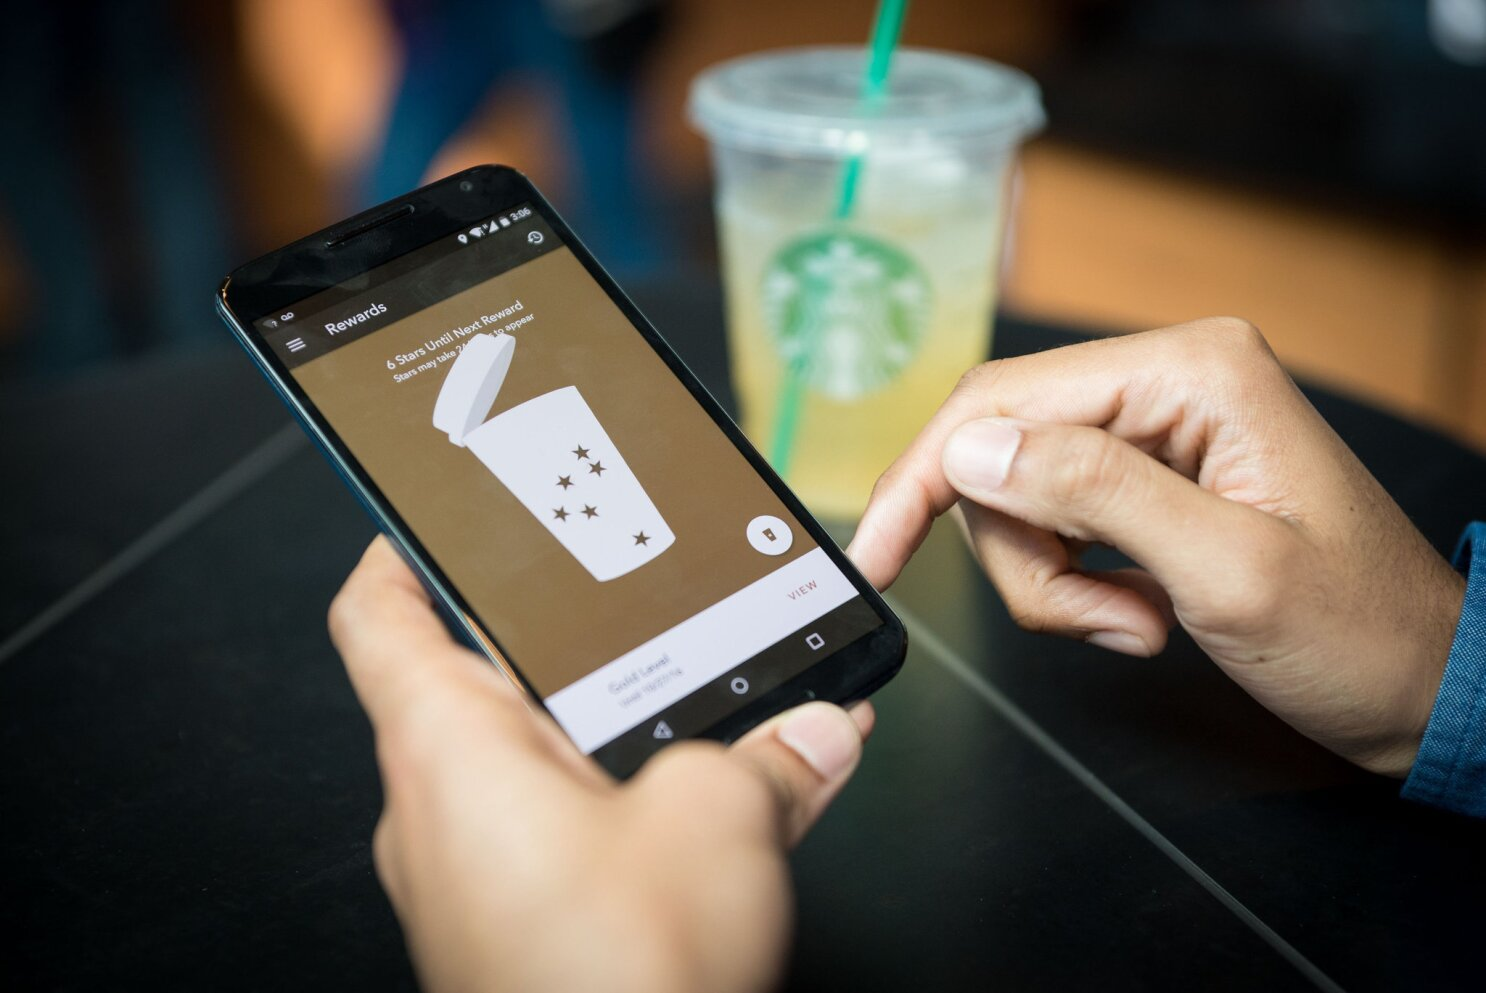 Starbucks rolls out Mobile Order & Pay at locations